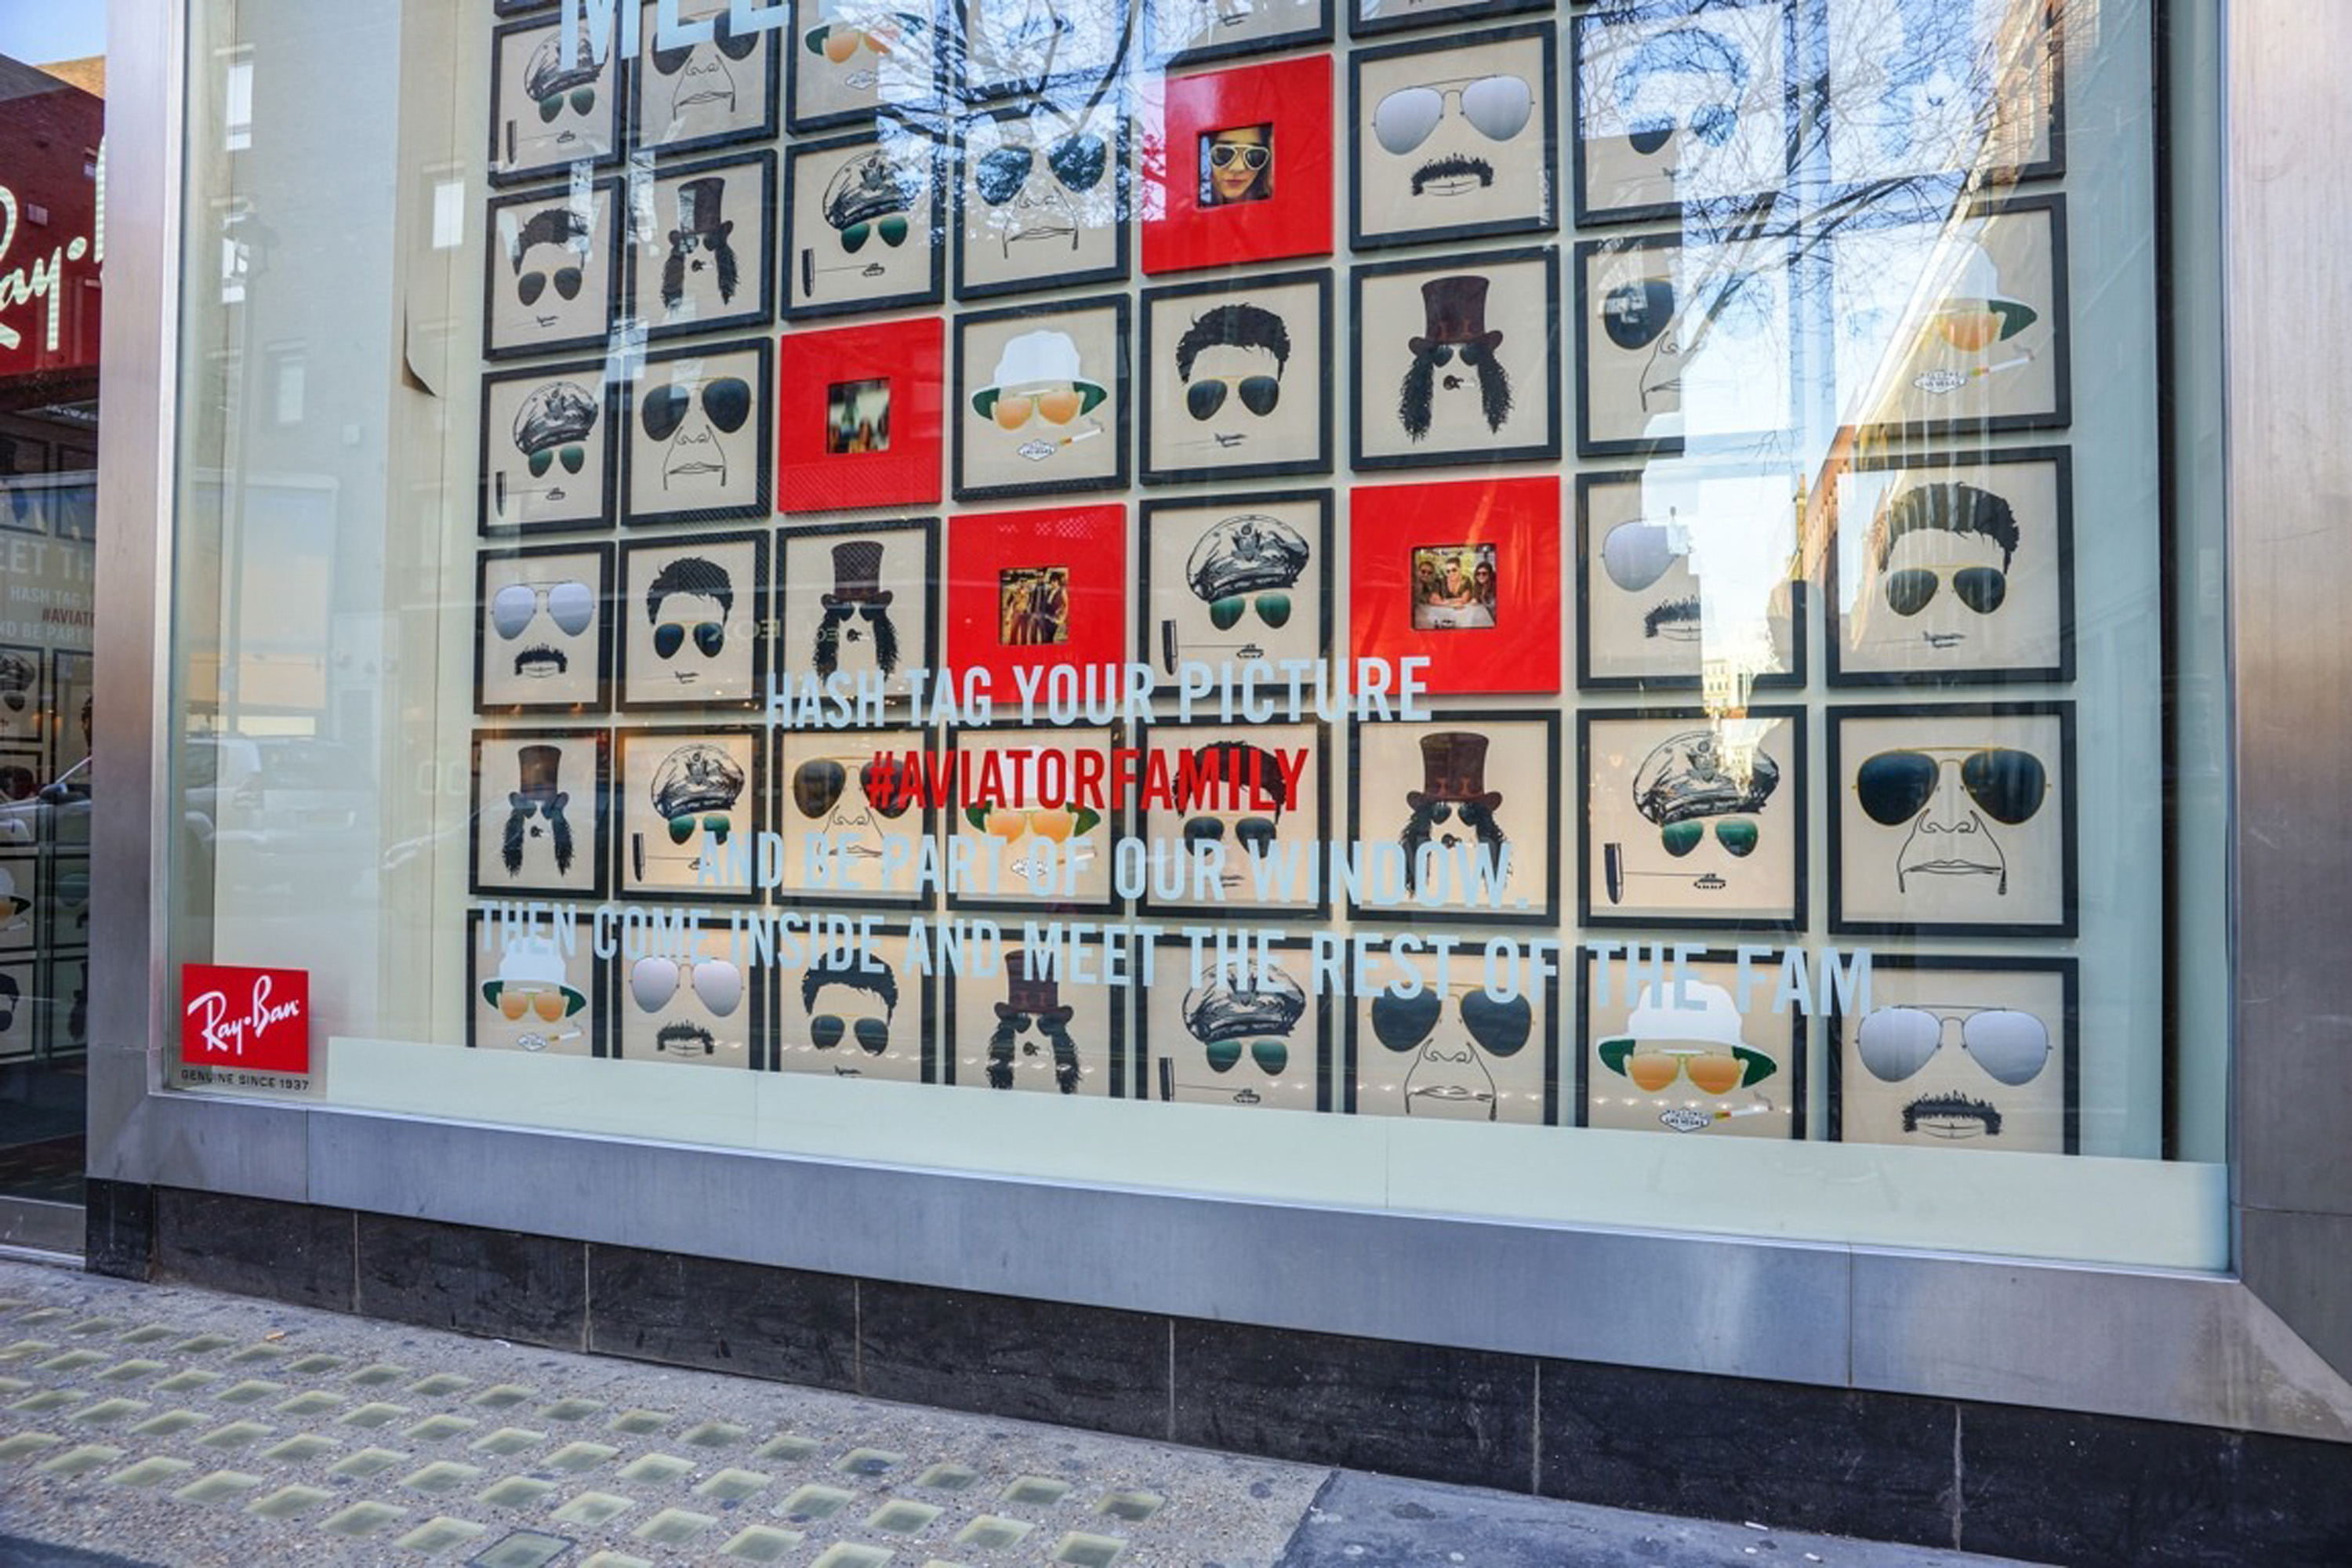 ray ban shop jsrb  ray ban shop covent garden address